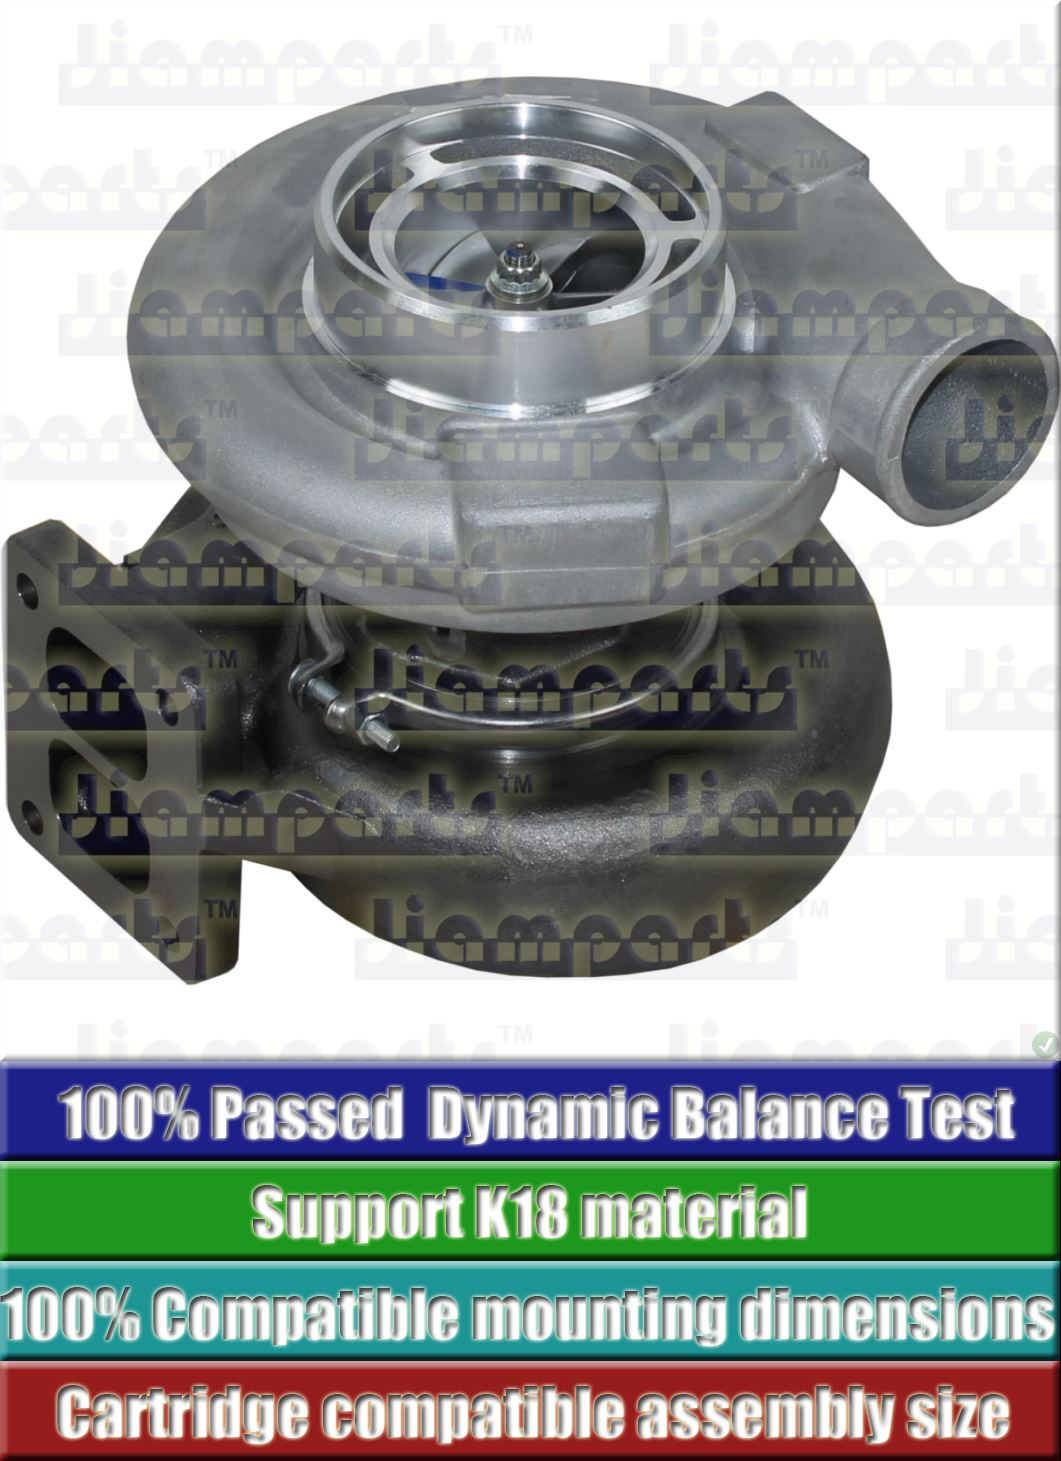 Description image:Turbocharger TD08H-31M 49188-01831